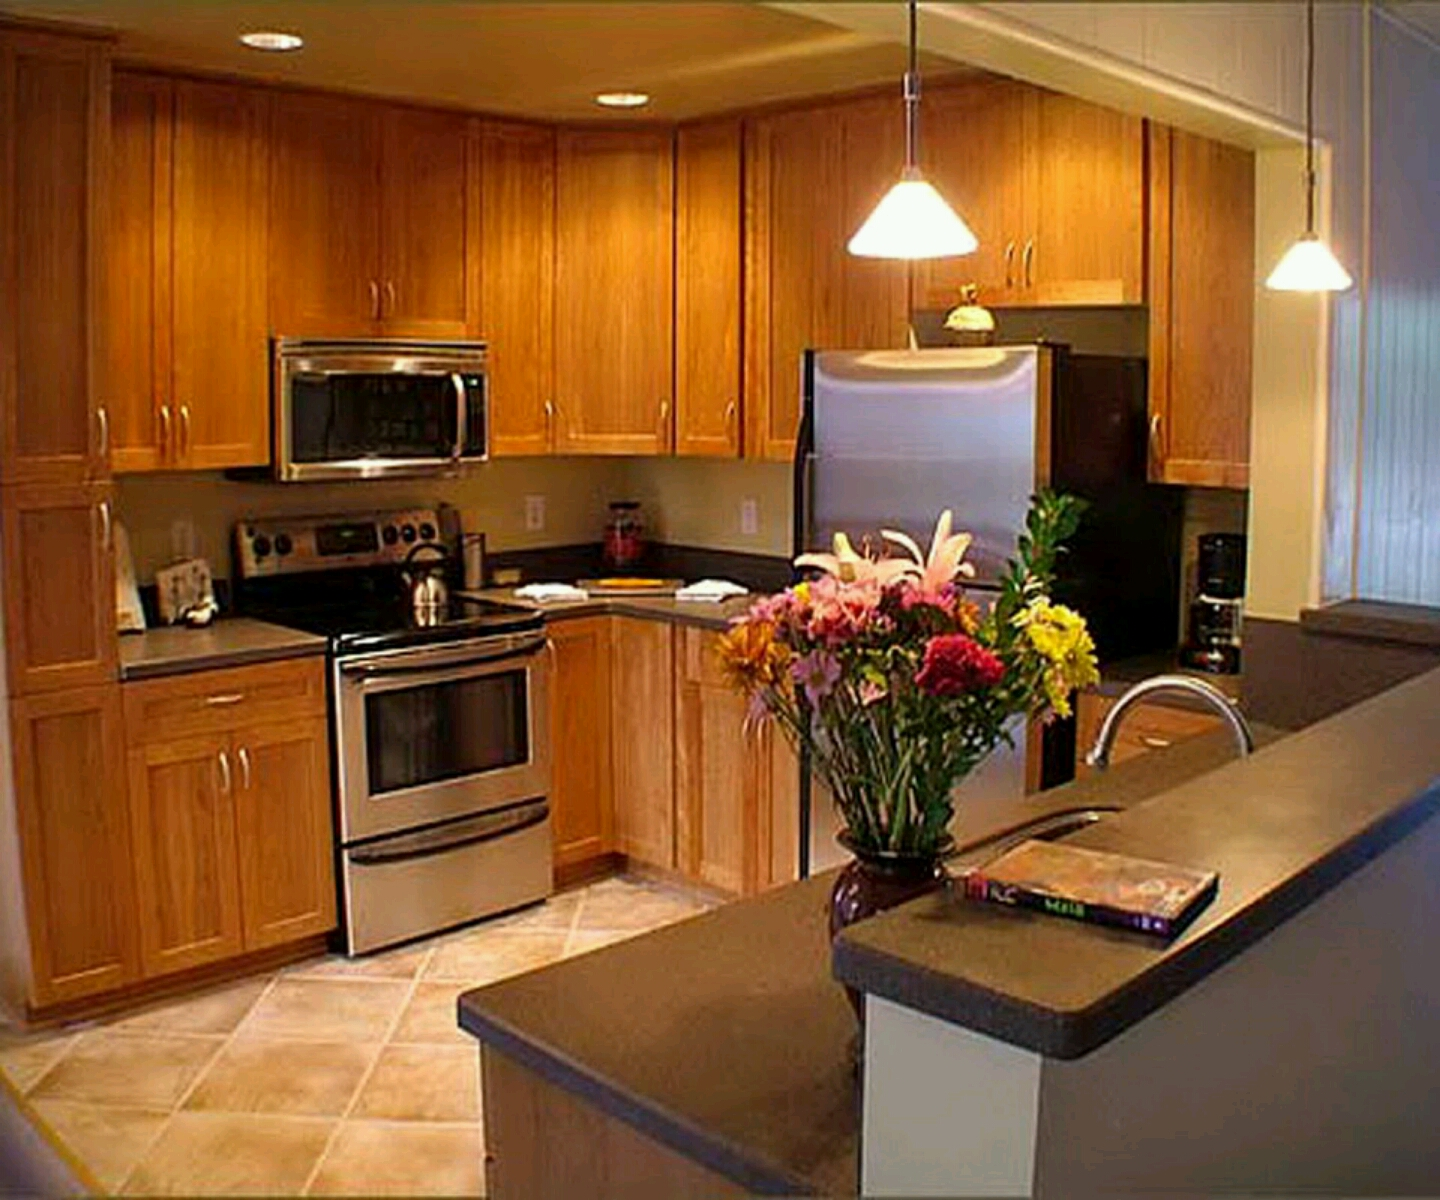 Modern wooden kitchen cabinets designs. | Interior Design